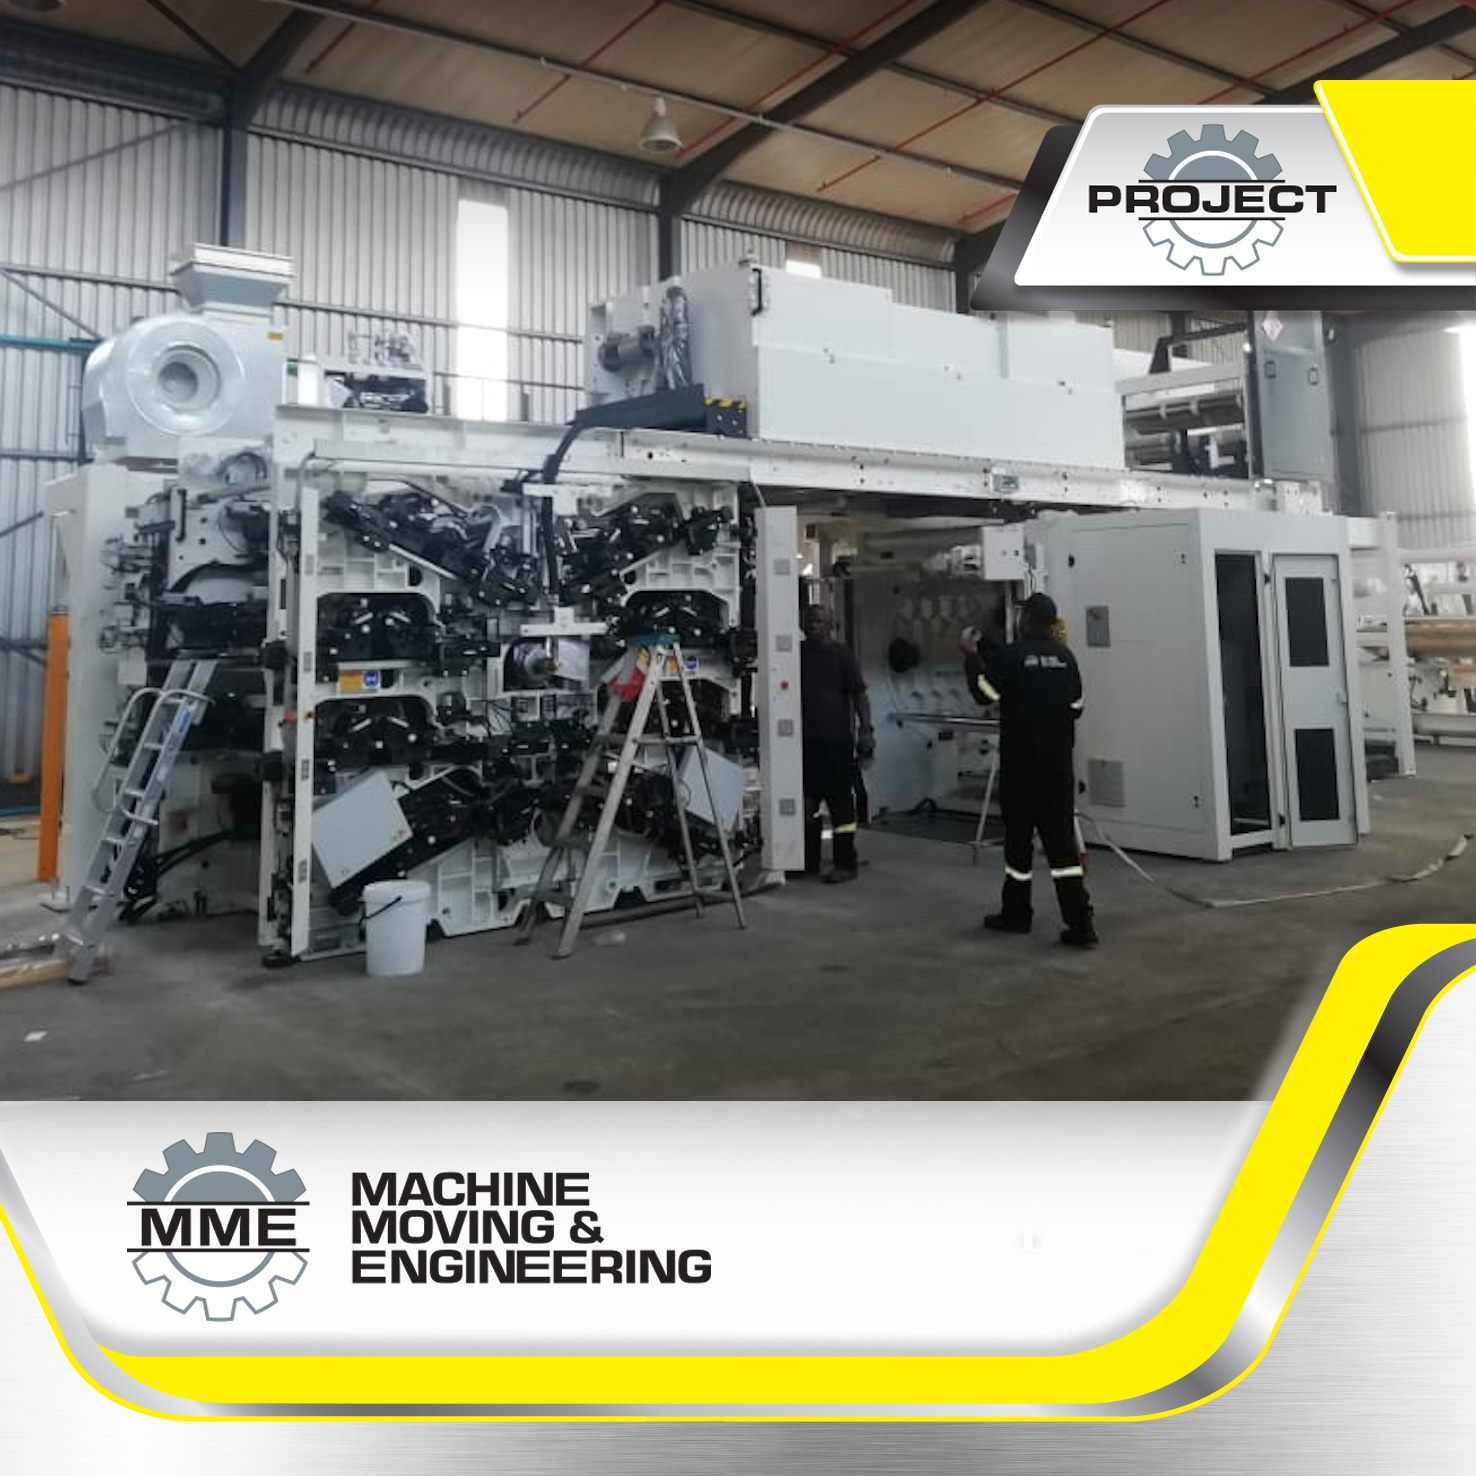 sack print line installation part-3-mme-projects-mme-machine-moving-engineering-machinery-equipment-gauteng-kwazulu-natal-south-africa-team-of-engineers